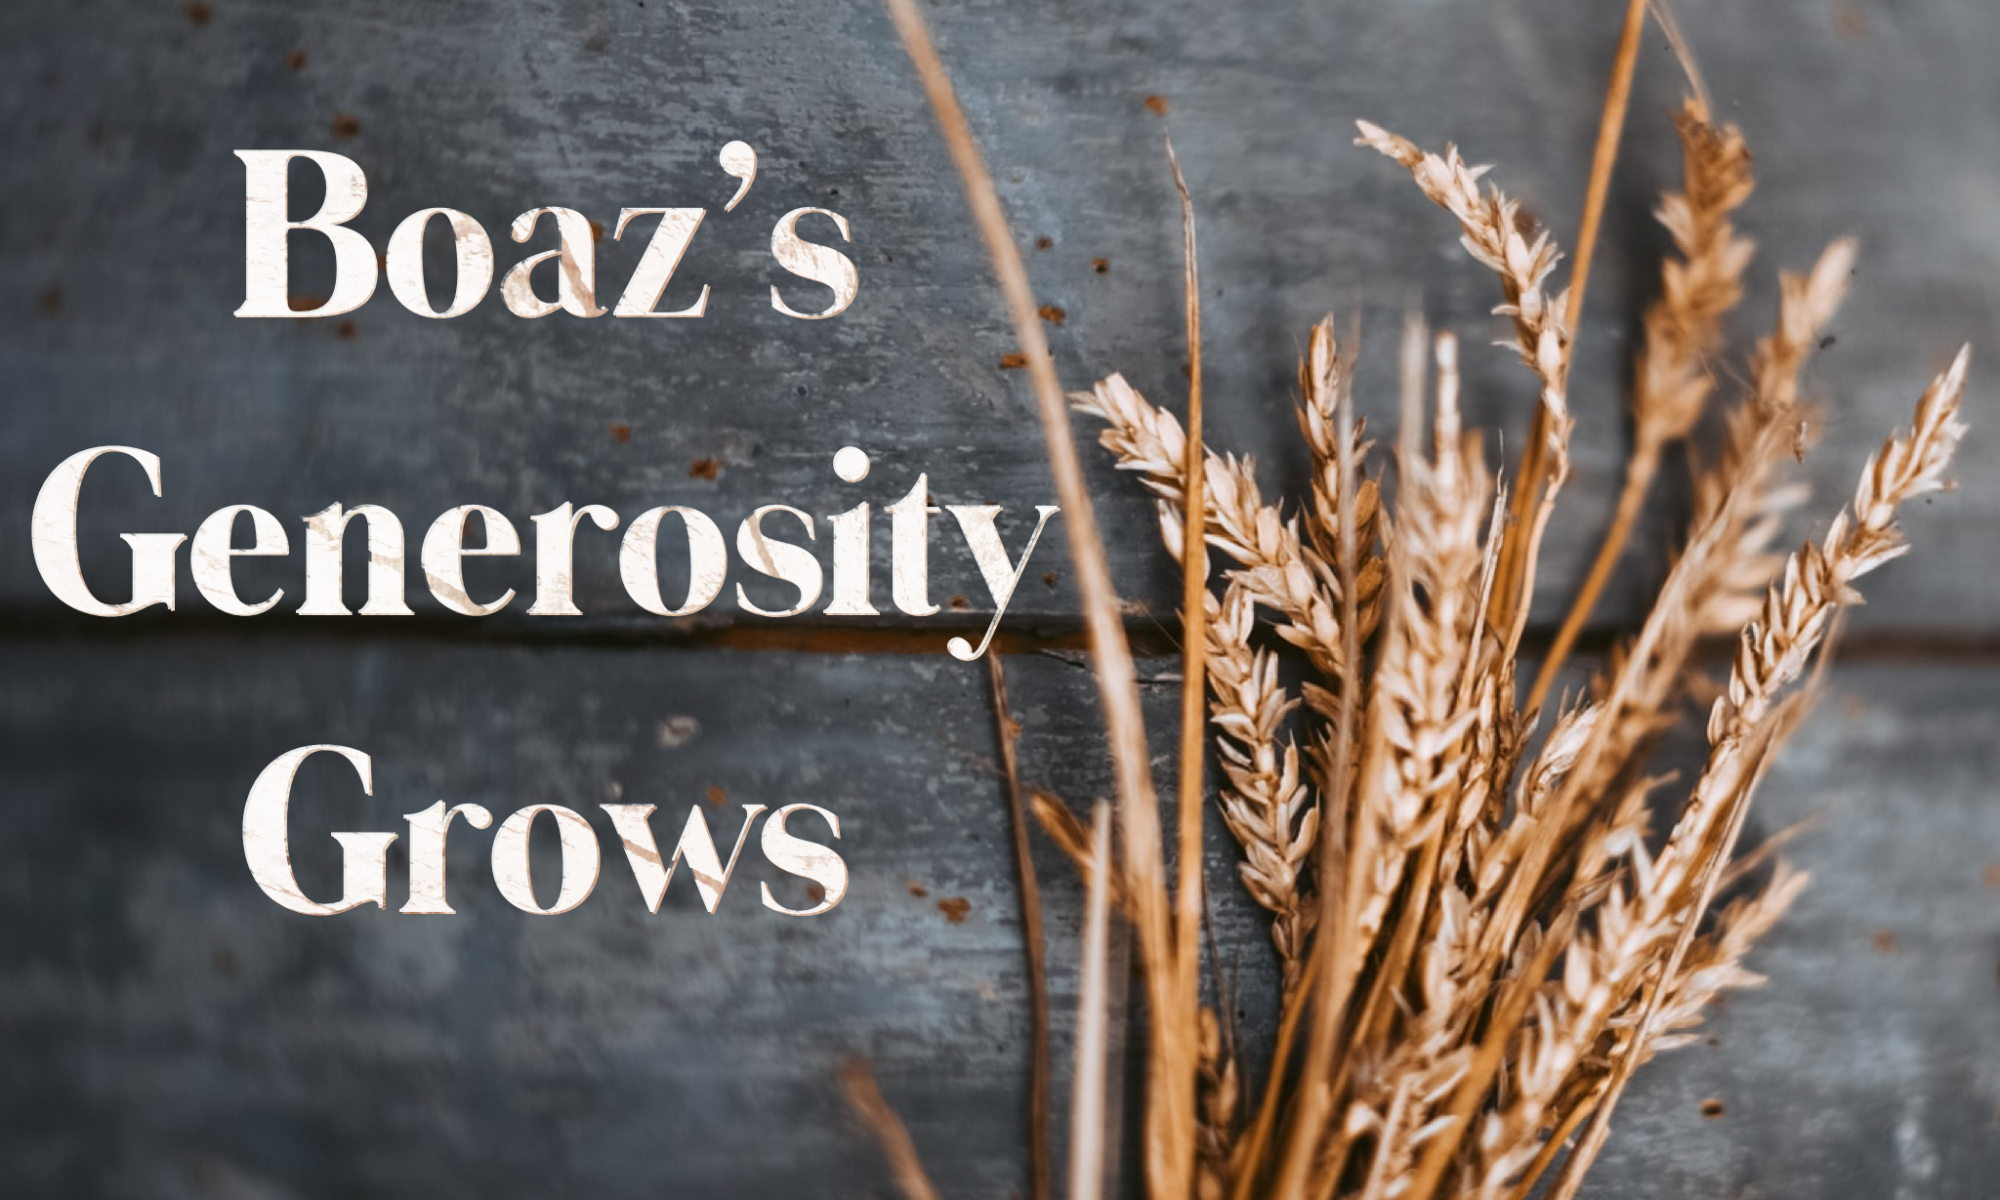 Boaz's Generosity Grows